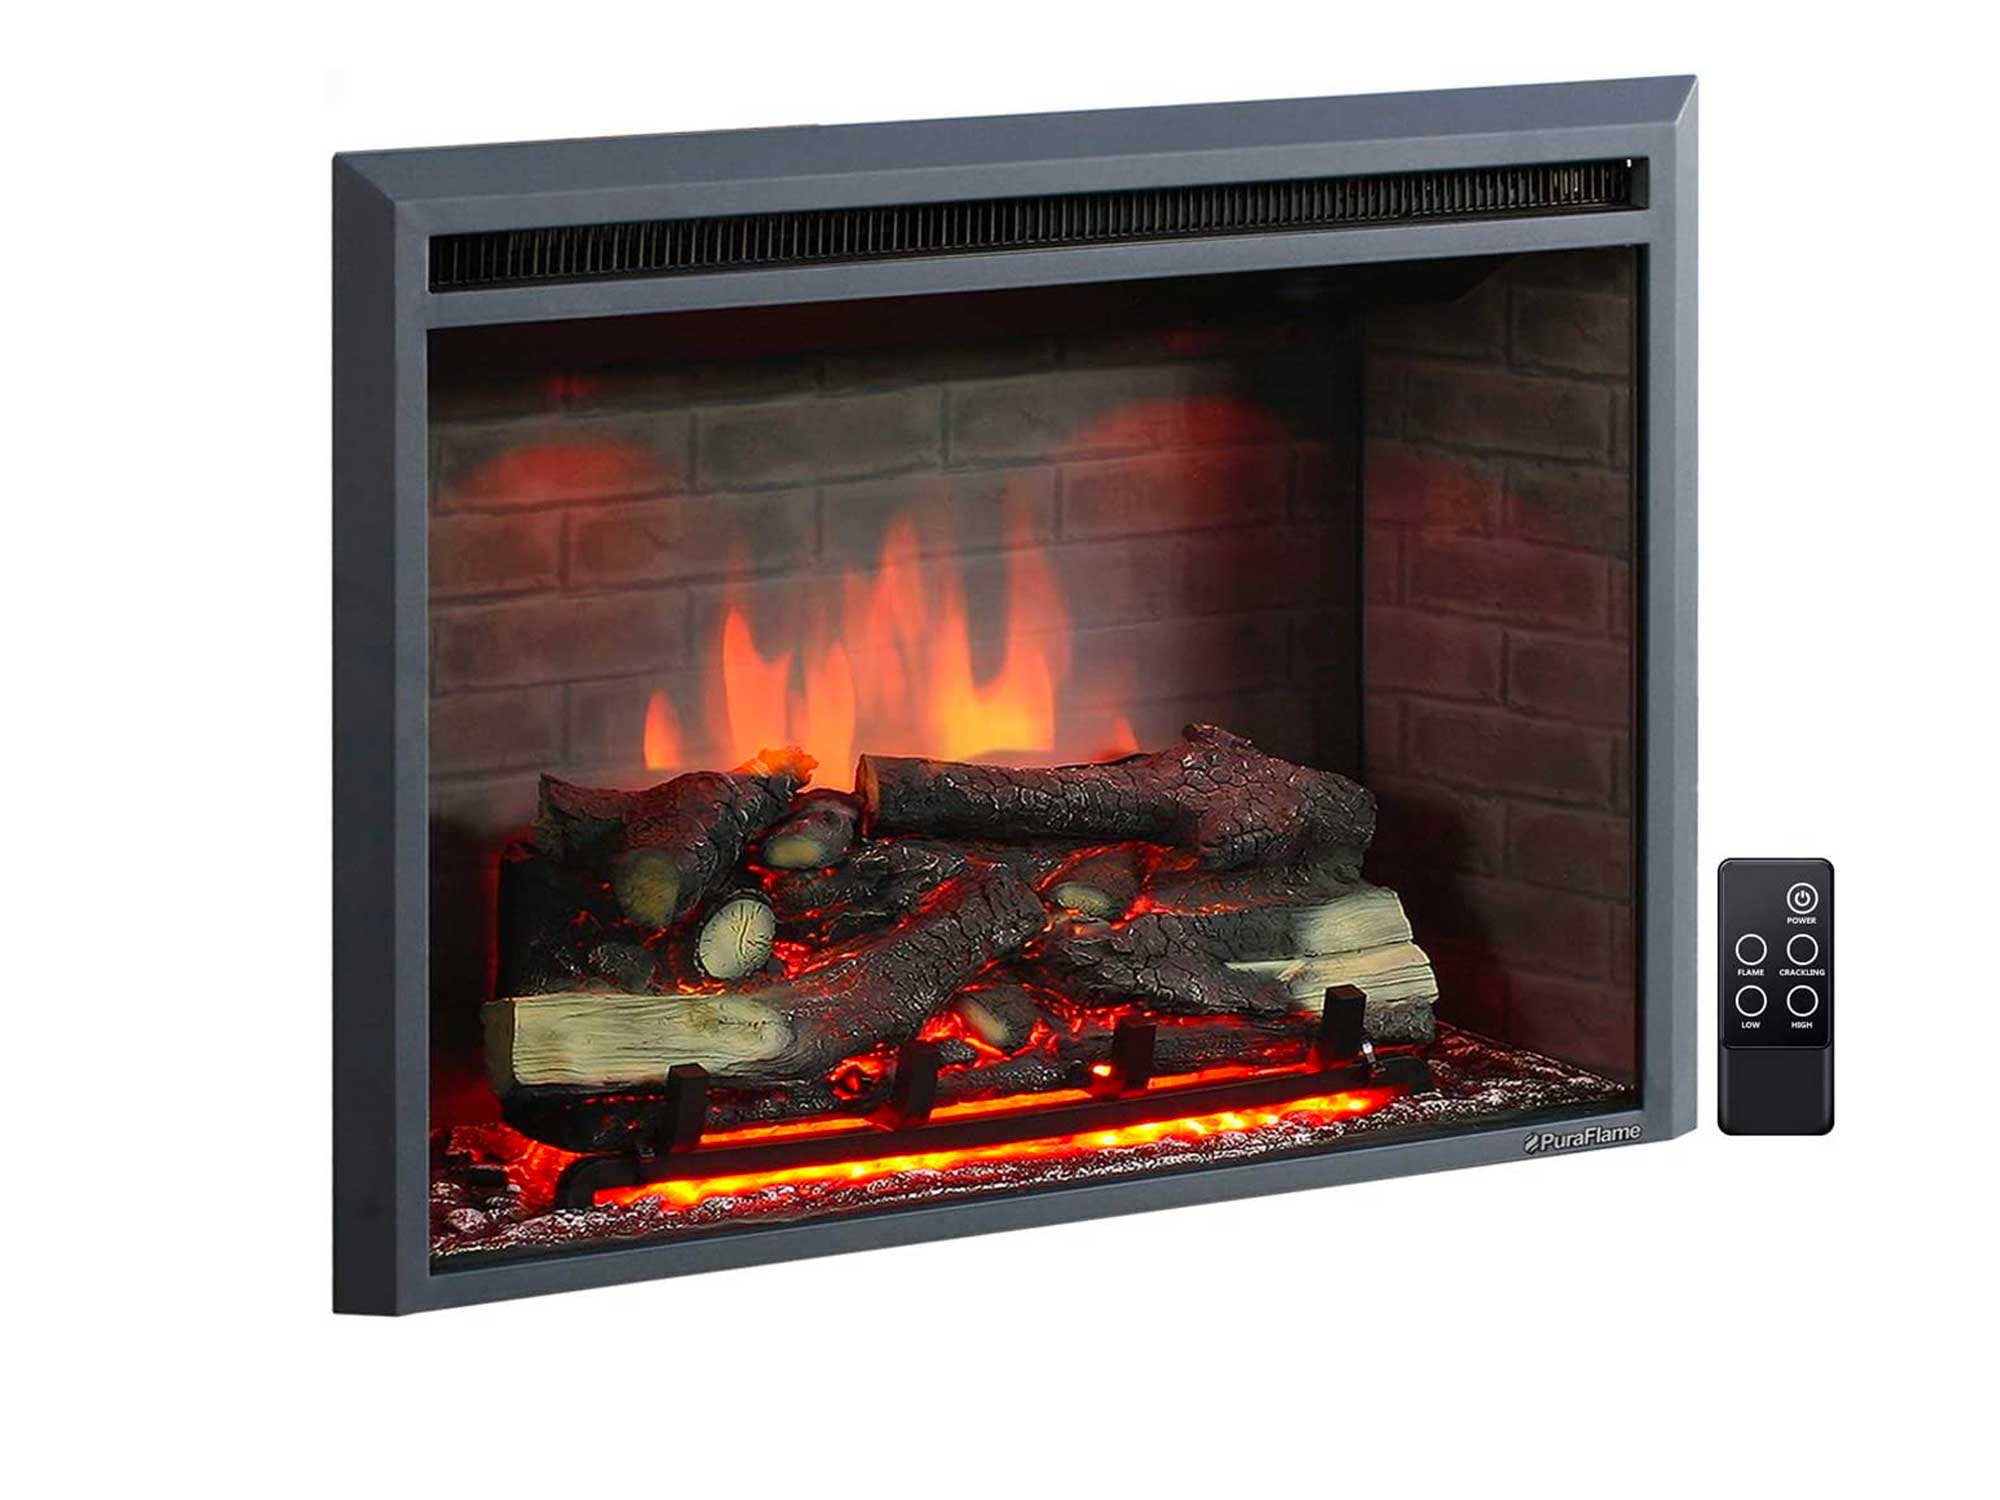 PuraFlame 33 Inches Western Electric Fireplace Insert with Fire Crackling Sound, Remote Control, 750/1500W